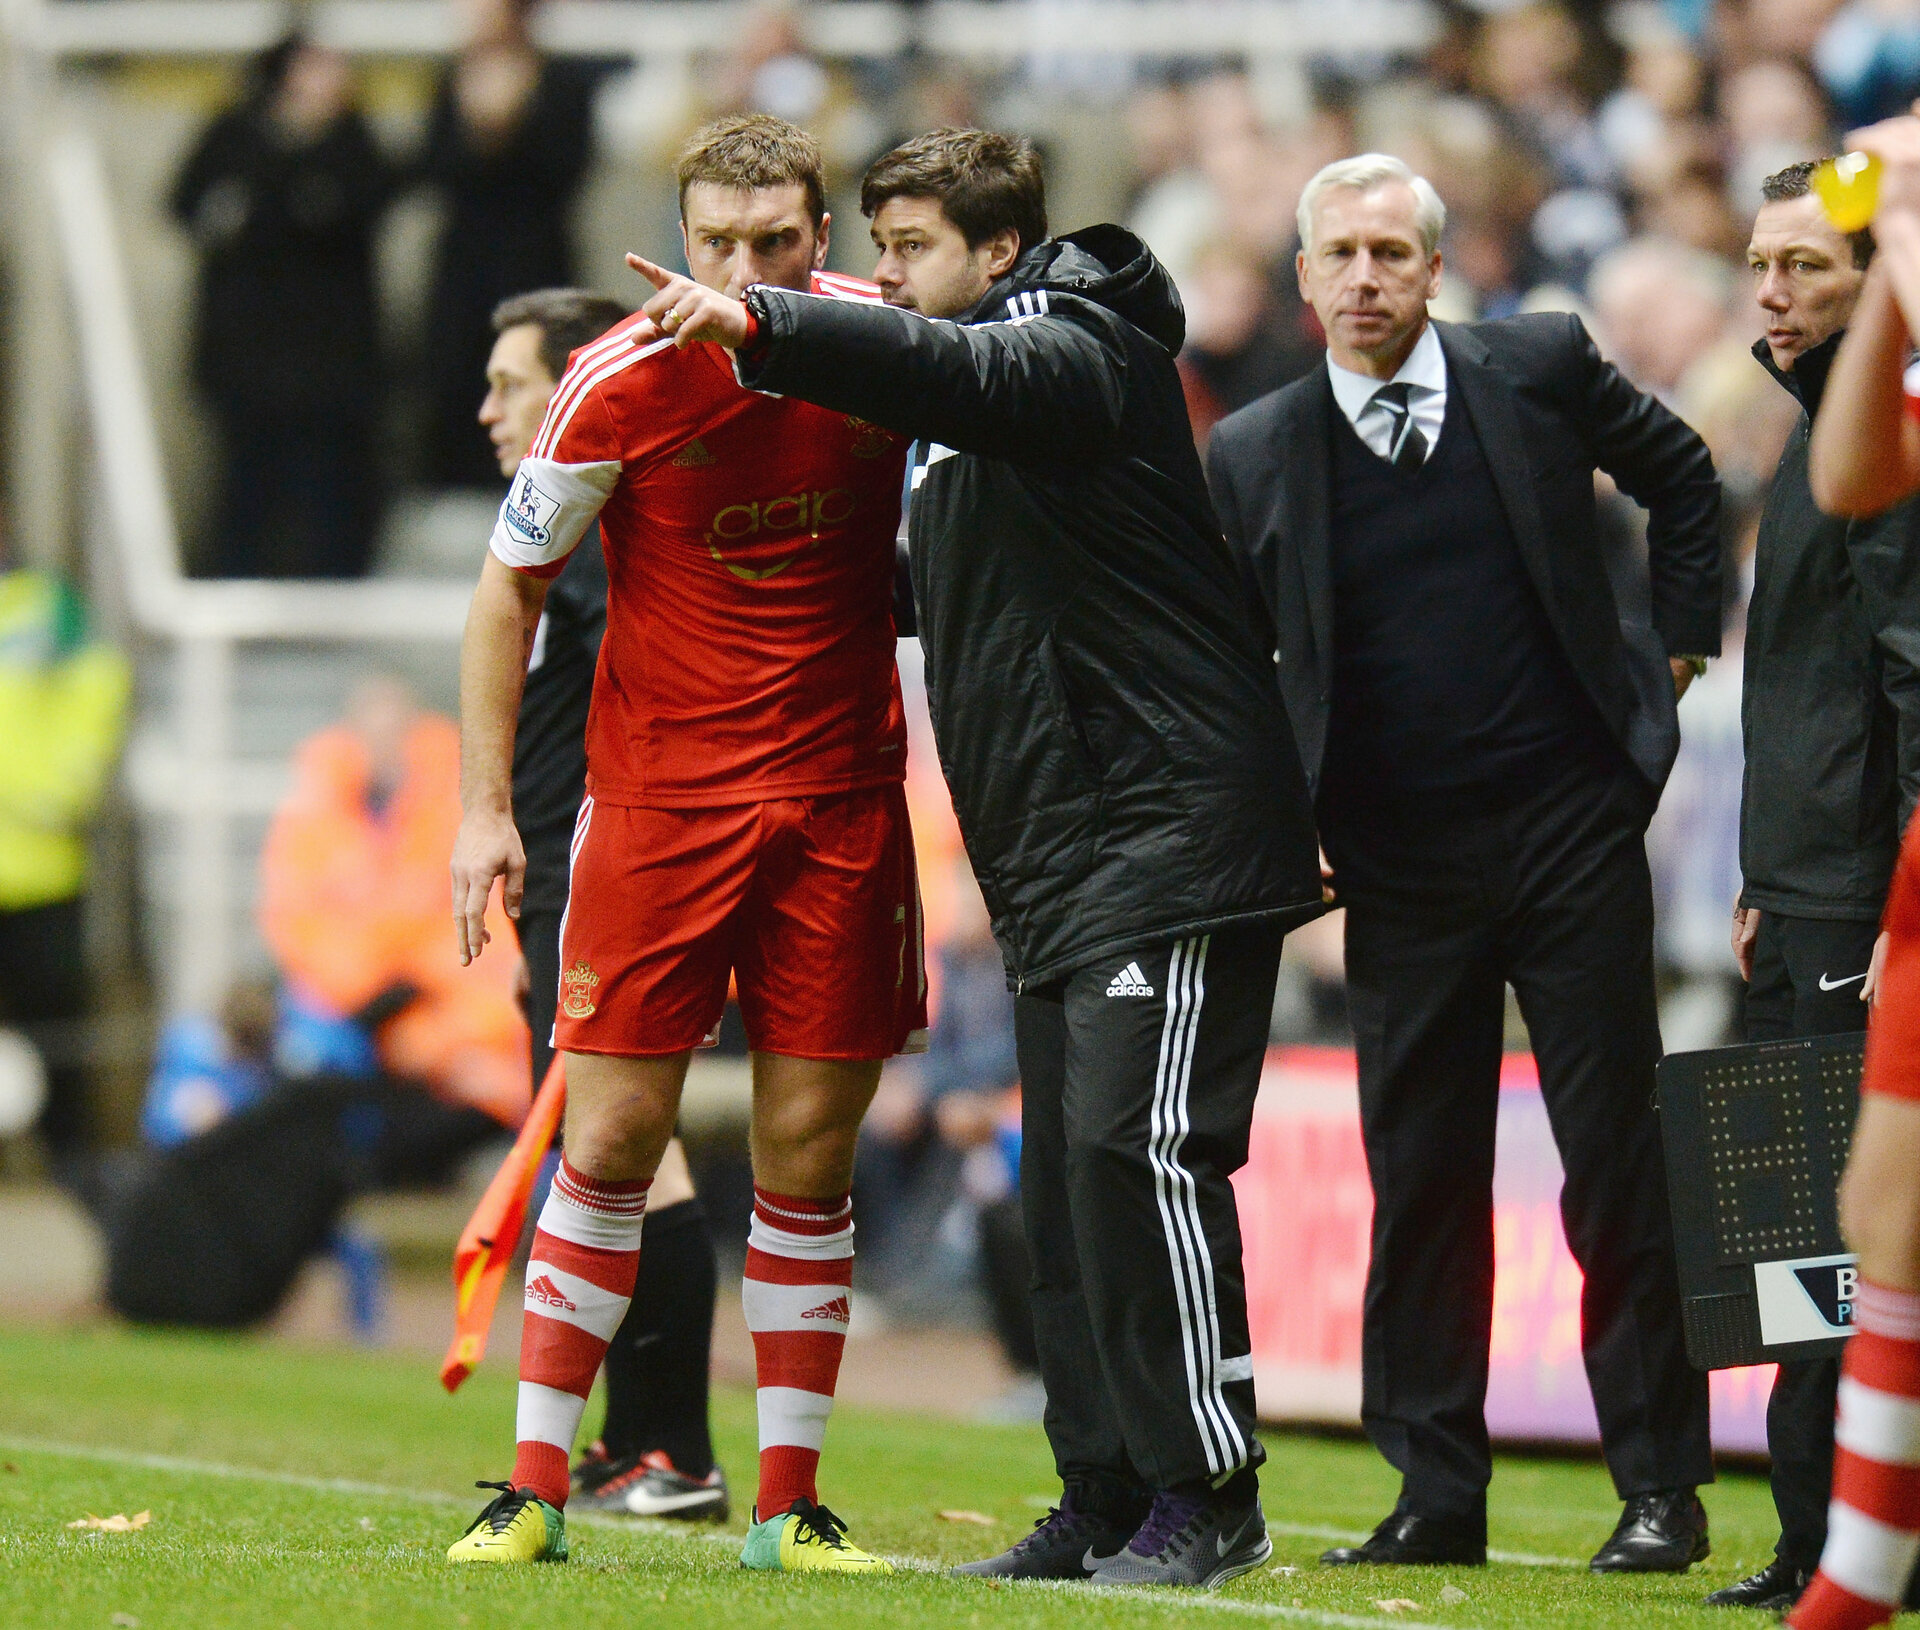 NEWCASTLE UPON TYNE, ENGLAND - DECEMBER 14:  Mauricio Pochettino, manager of Southampton gives instructions to Ricky Lambert of Southampton during the Barclays Premier League match between Newcastle United and Southampton at St James' Park on December 14, 2013 in Newcastle upon Tyne, England.  (Photo by Tony Marshall/Getty Images)